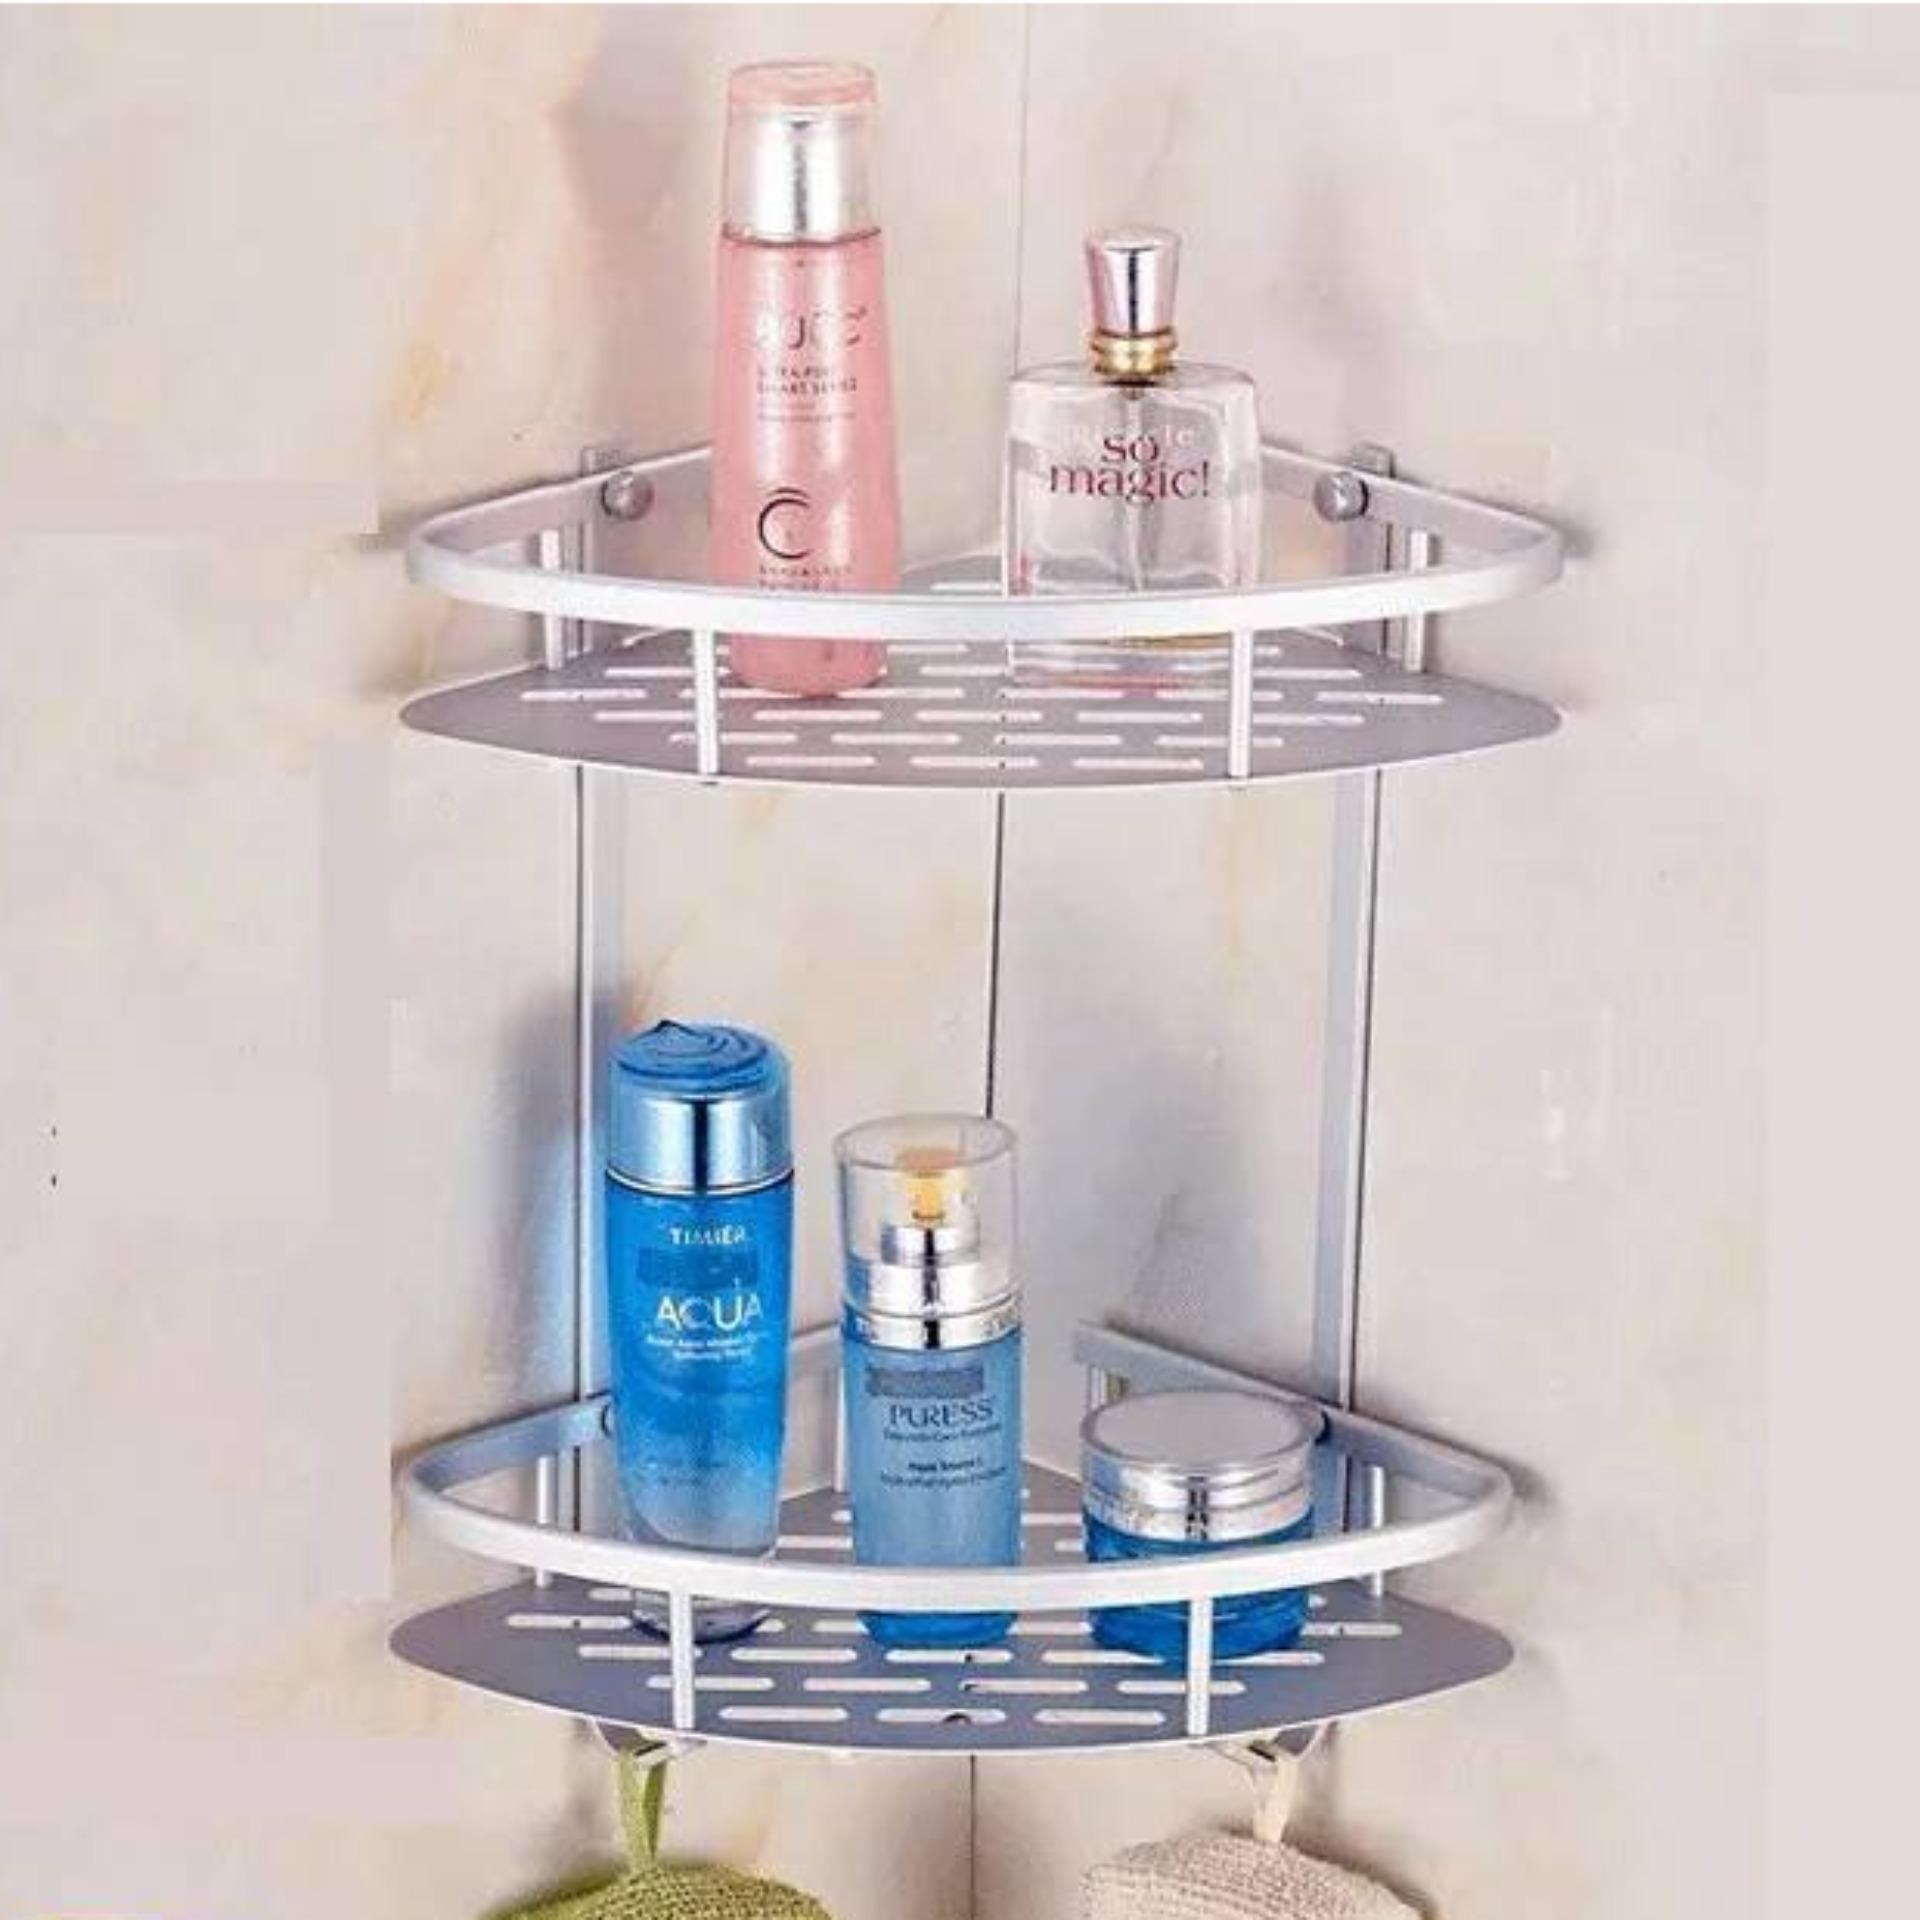 Shower Caddy for sale - Shower Holder prices, brands & review in ...